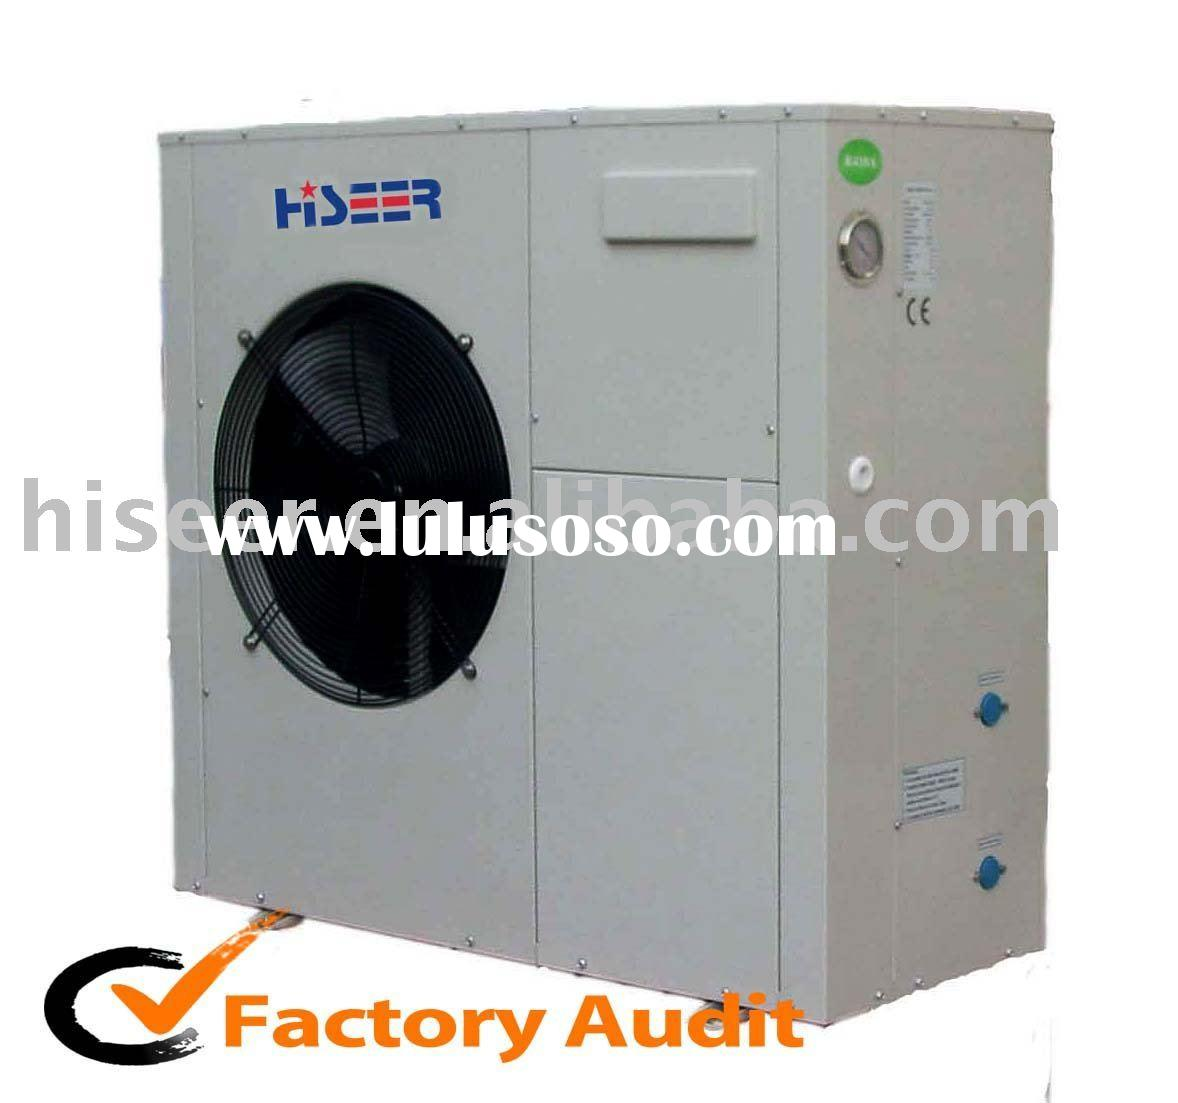 Side Discharge Air Cooled Chiller (Heat Pump)